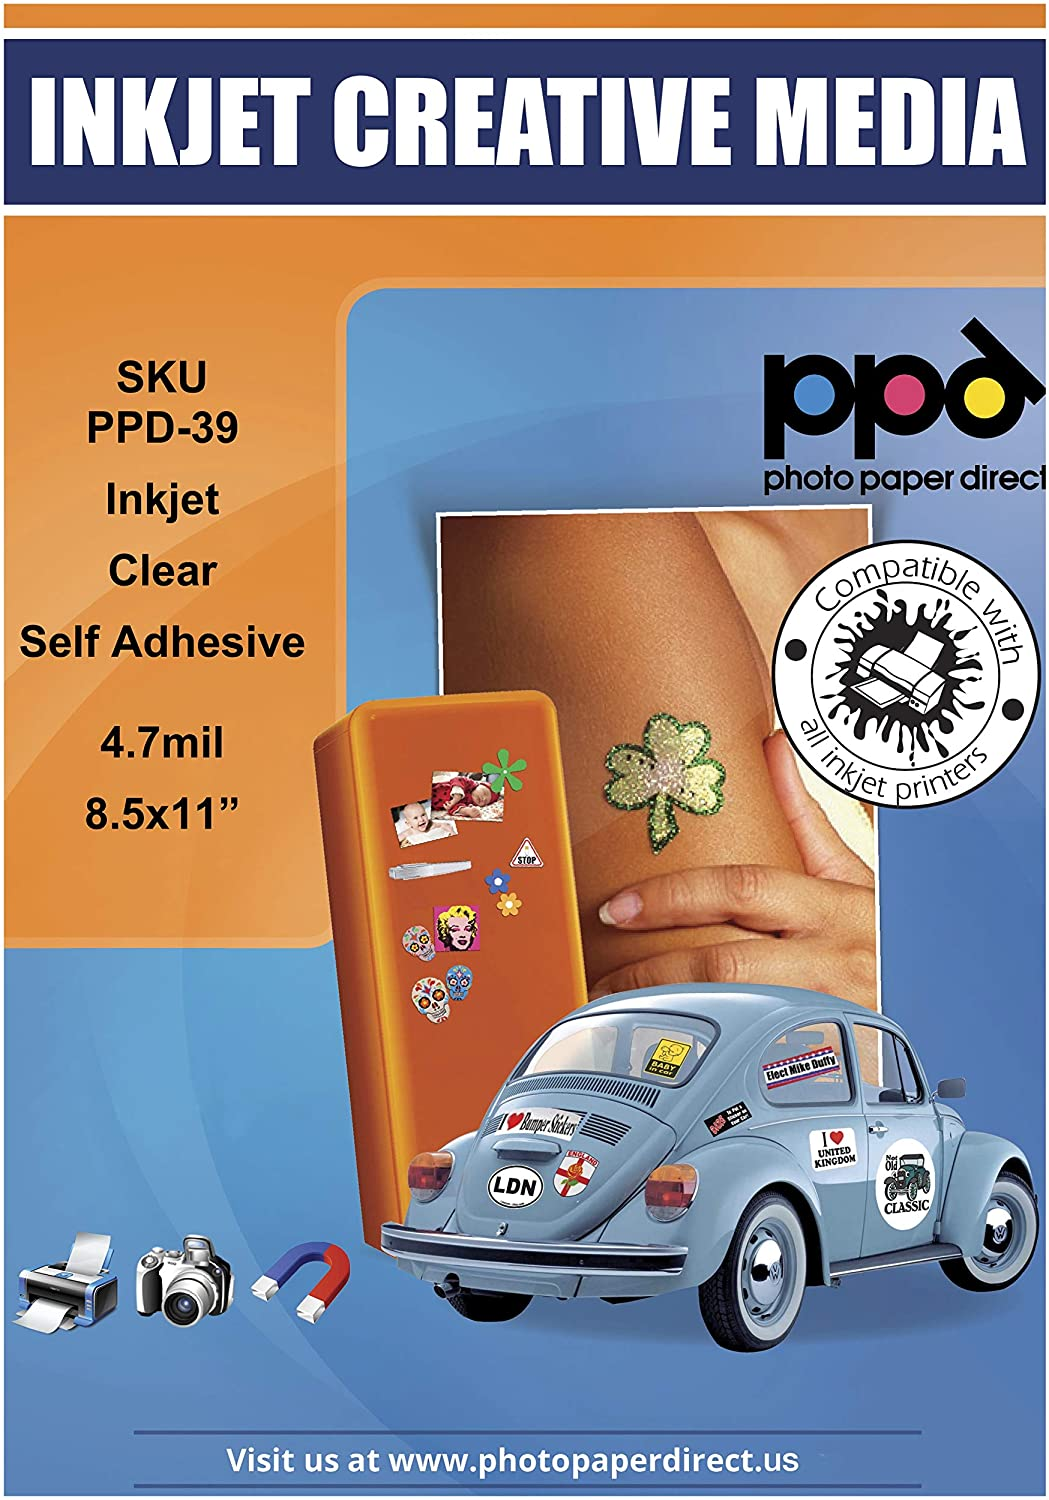 PPD Inkjet Clear Creative Self Adhesive Sticker LTR 8.5 x 11 Inch PPD-39-50